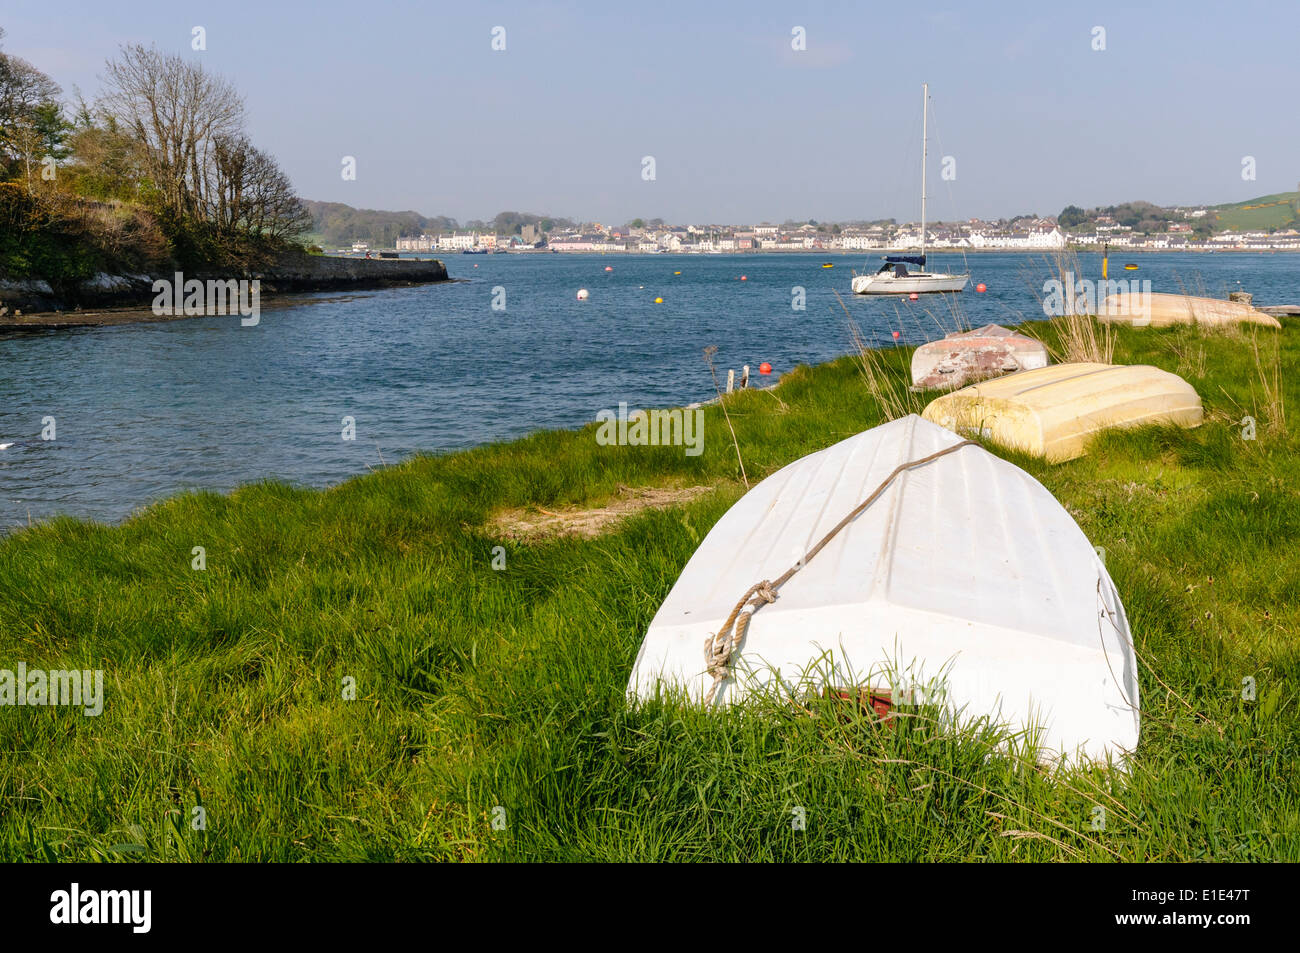 Rowing boats beside Strangford Lough, looking over towards Portaferry - Stock Image